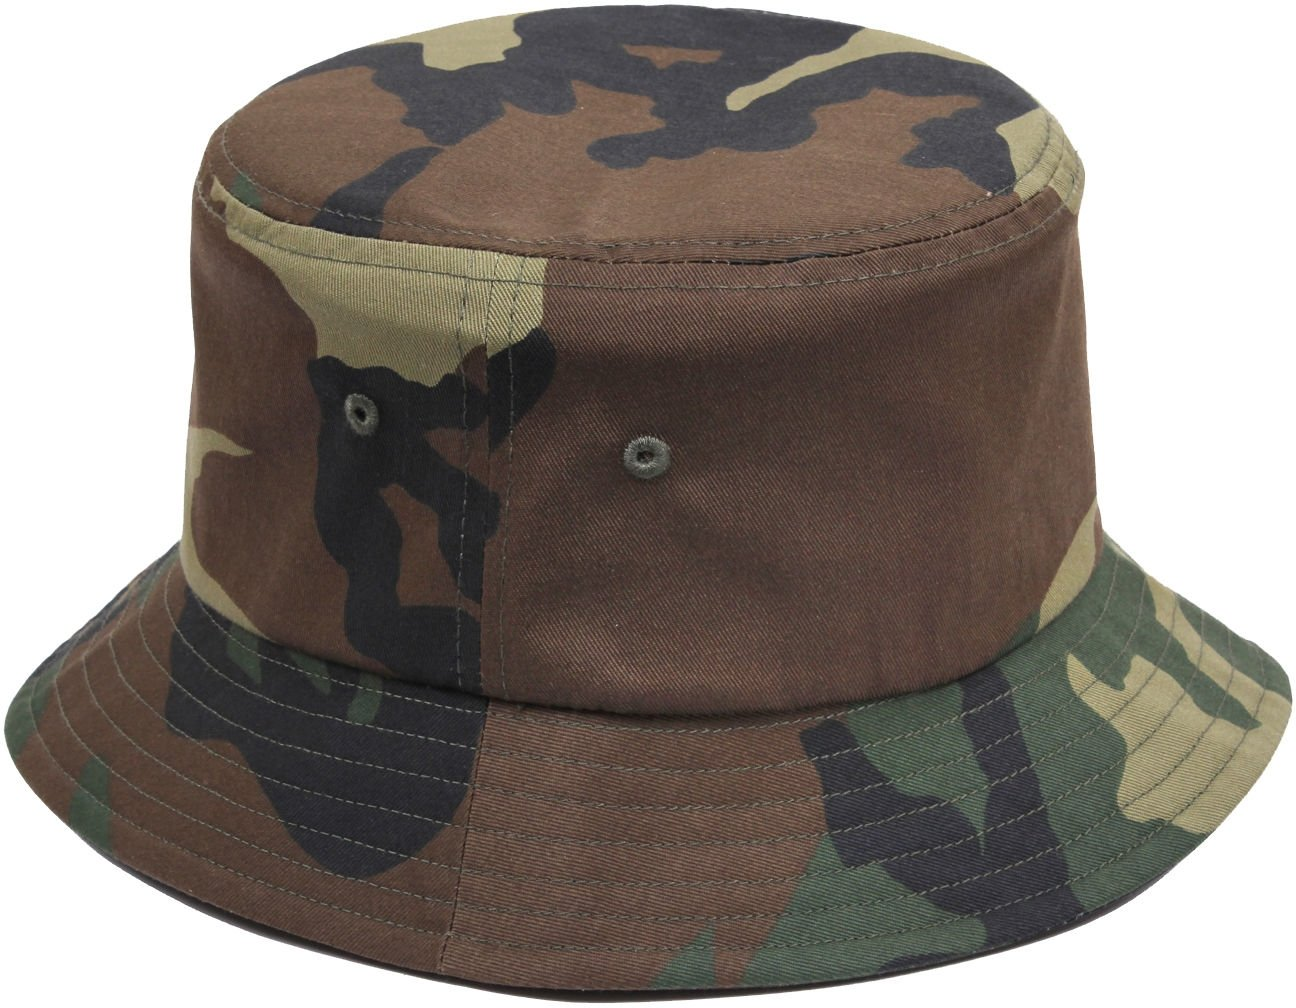 Digital camouflage classic military fishing bucket hat ebay for Fishing bucket hats